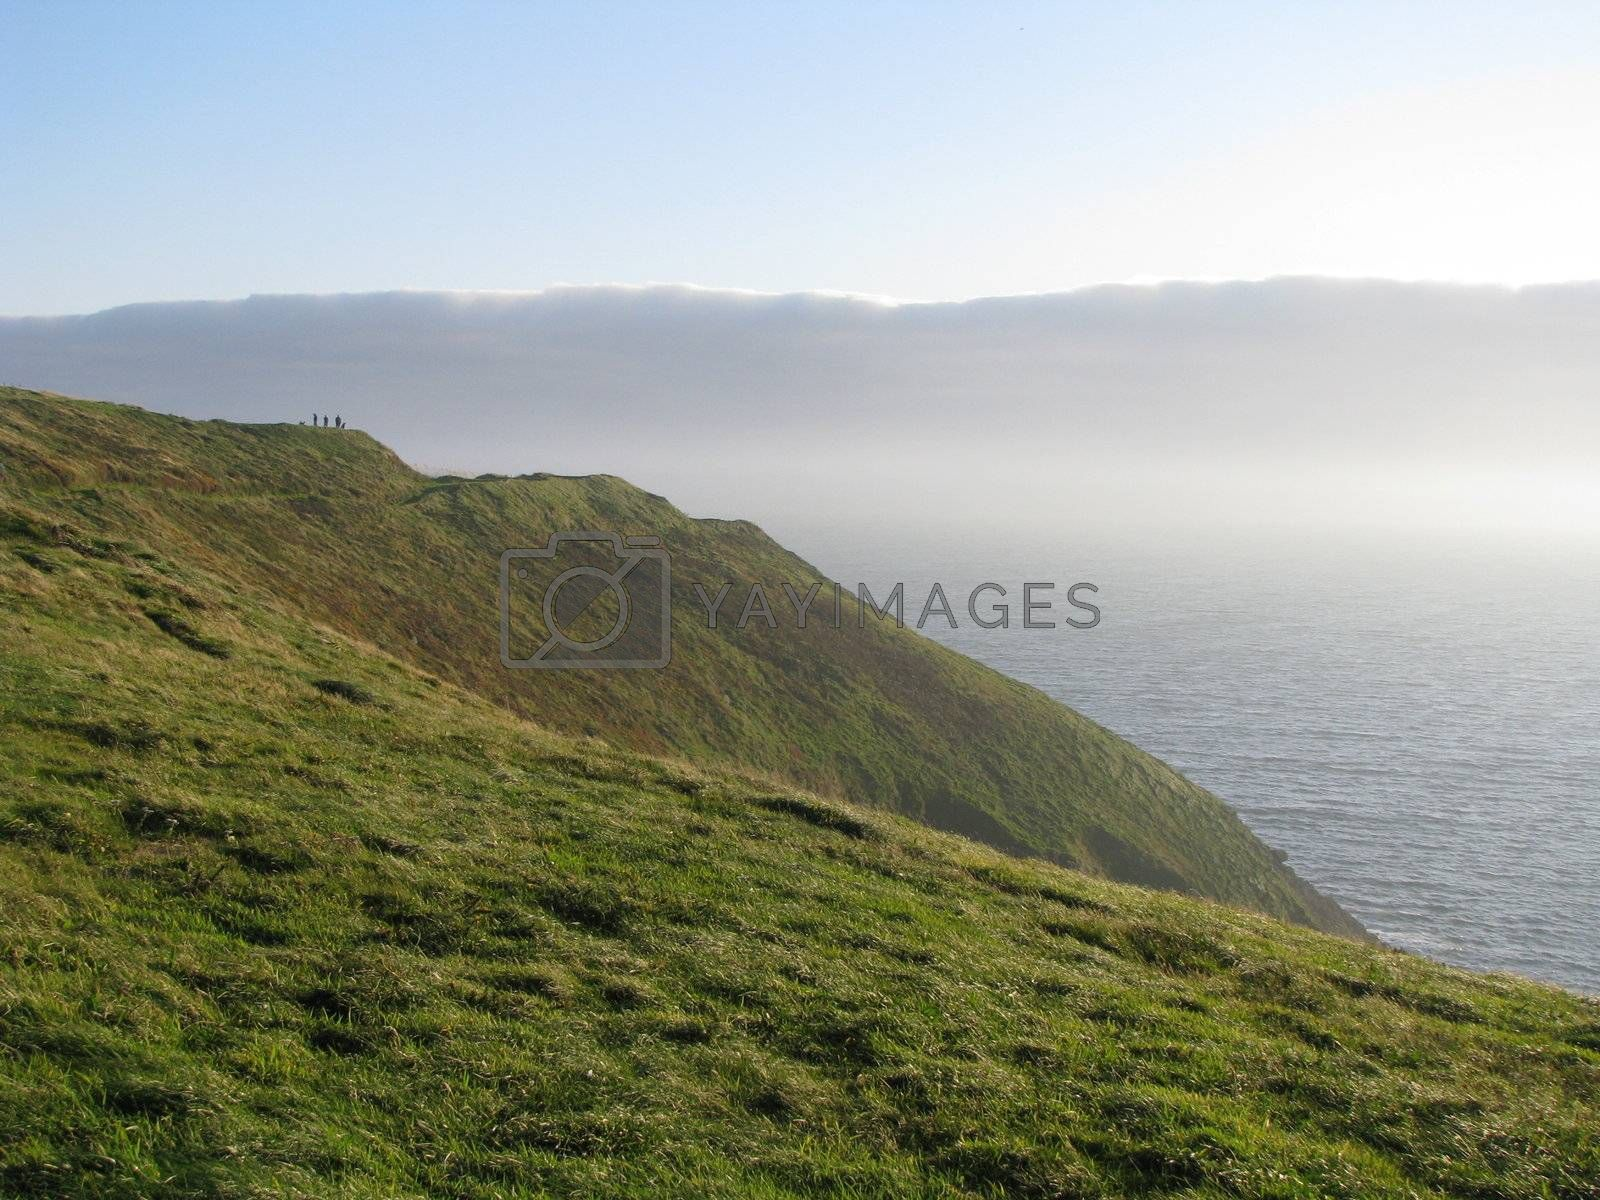 This is a tee box at Old Head in Ireland